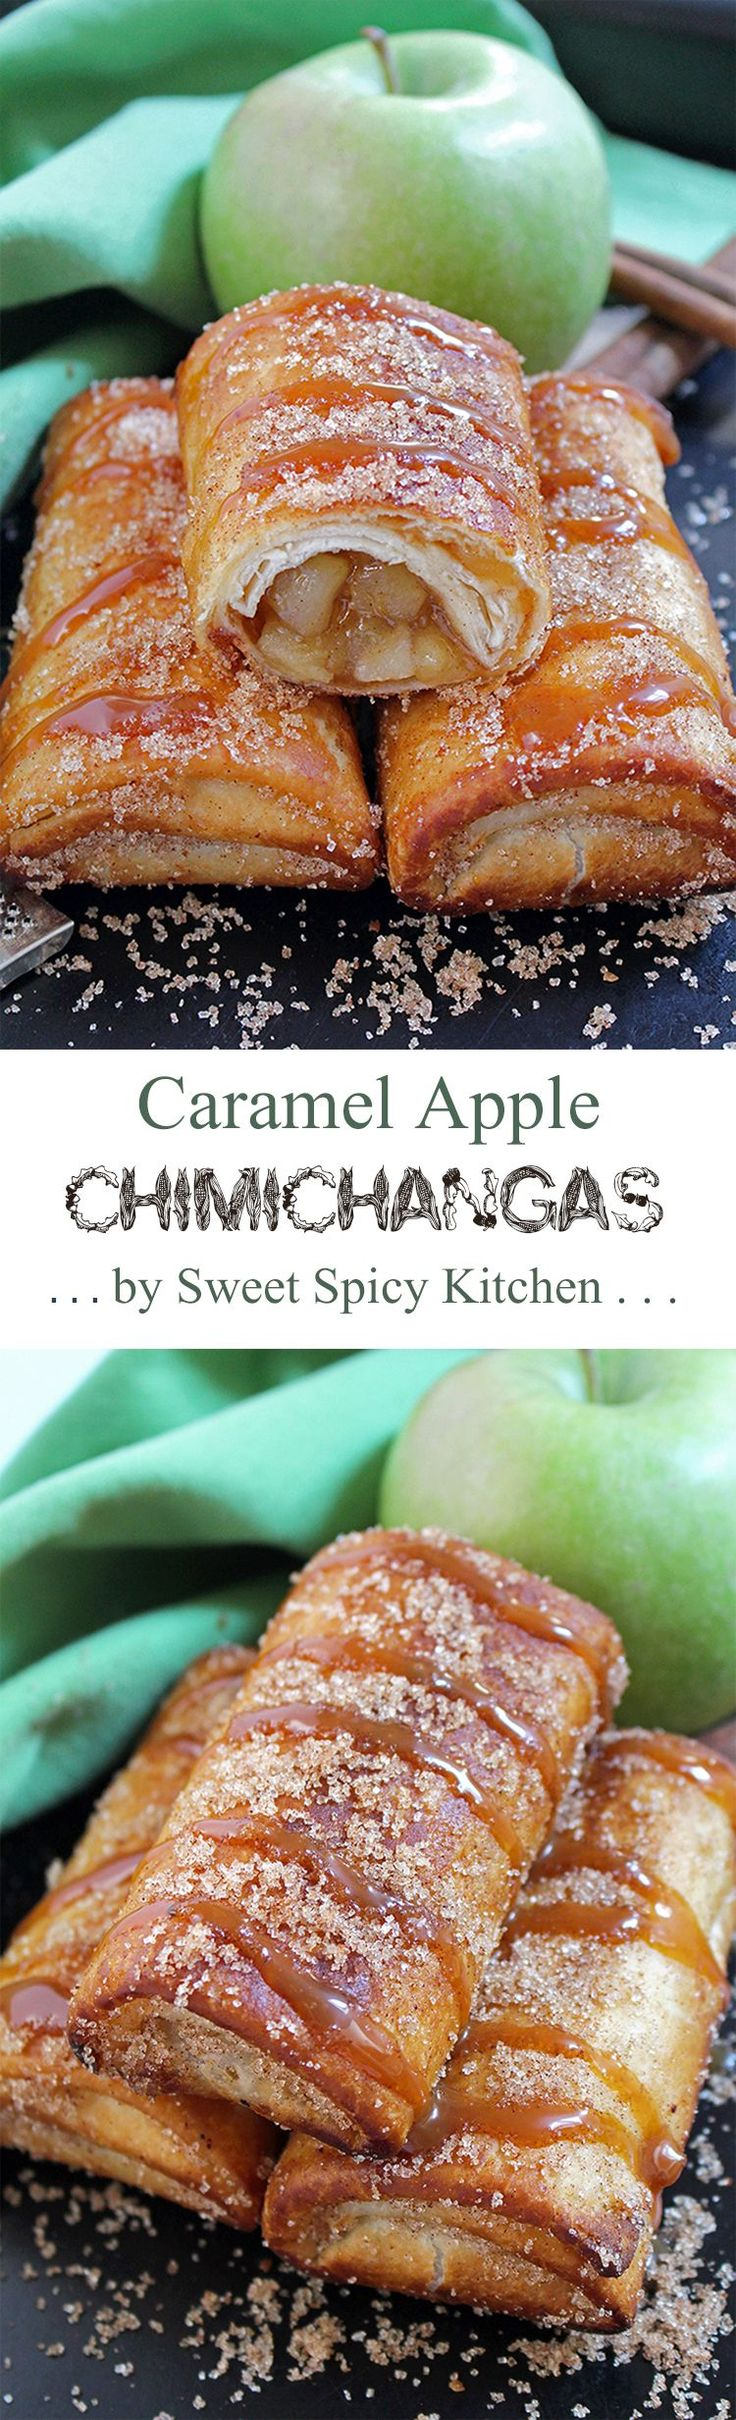 Every season has its charms. Fall is a time of the year when we enjoy beautiful dishes. Delicious Caramel Apple Chimichangas dessert is one of them..